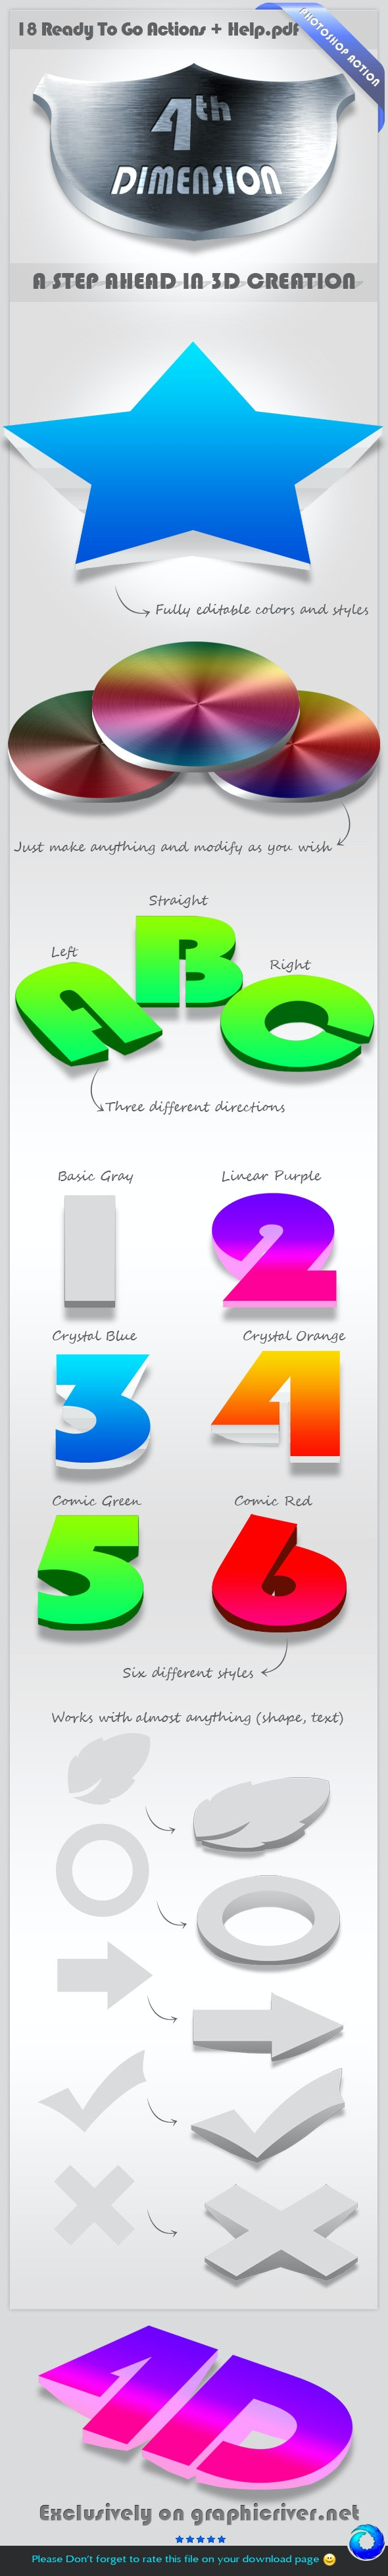 4D Photoshop Action - A Step Ahead In 3D Creation - Utilities Actions